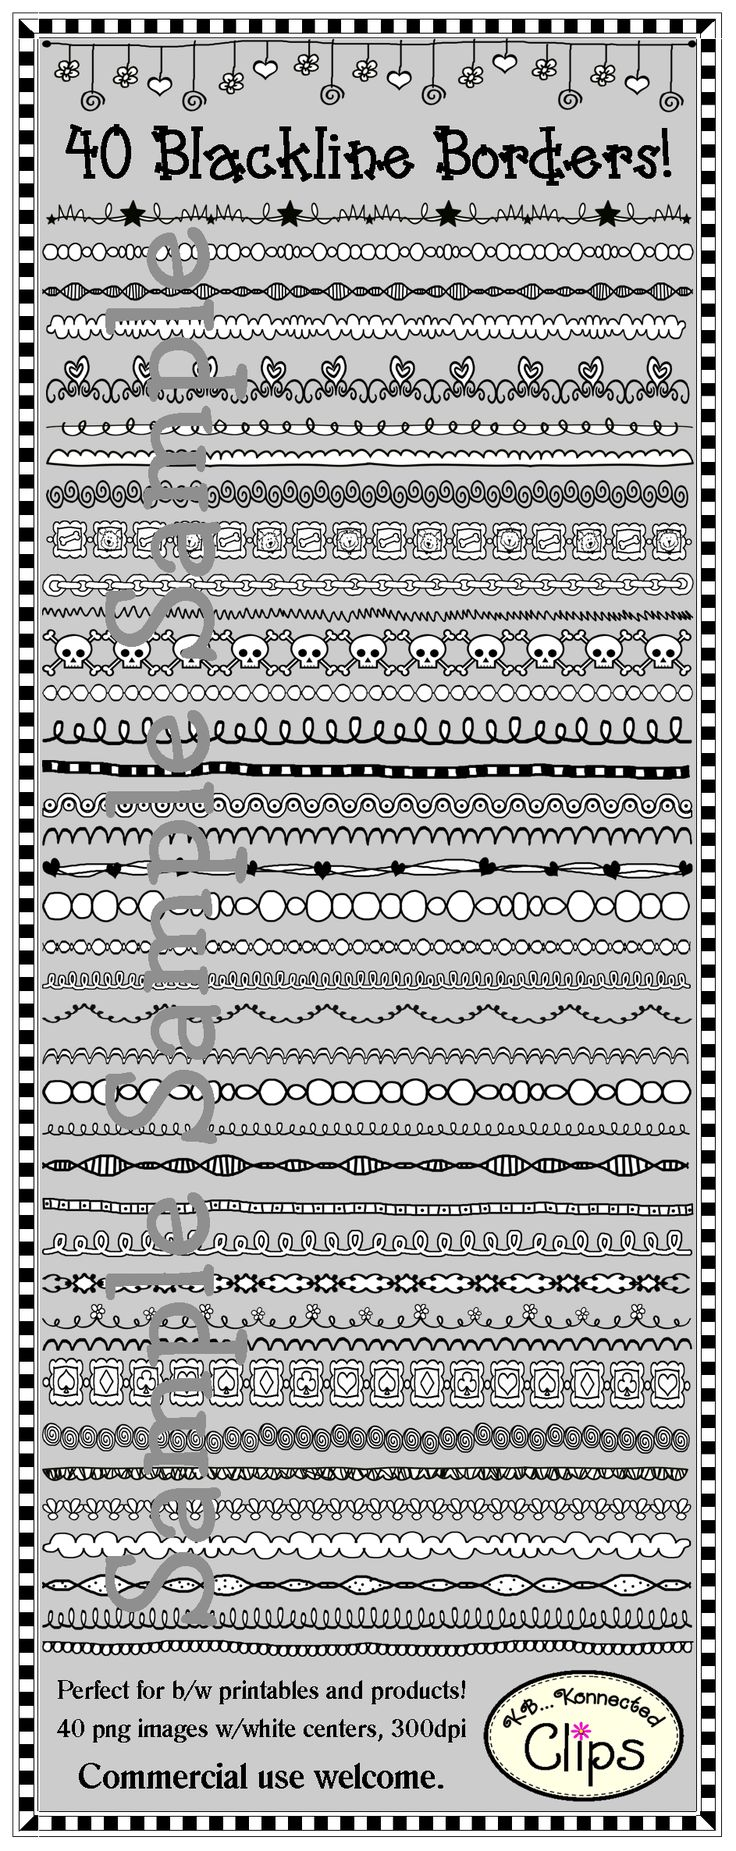 40 blackline Borders/Page Dividers for b/w products and printables! 2 Freebies in preview!!! $ http://www.teacherspayteachers.com/Product/40-Blackline-BordersPage-Dividers-2-freebies-in-preview-873650